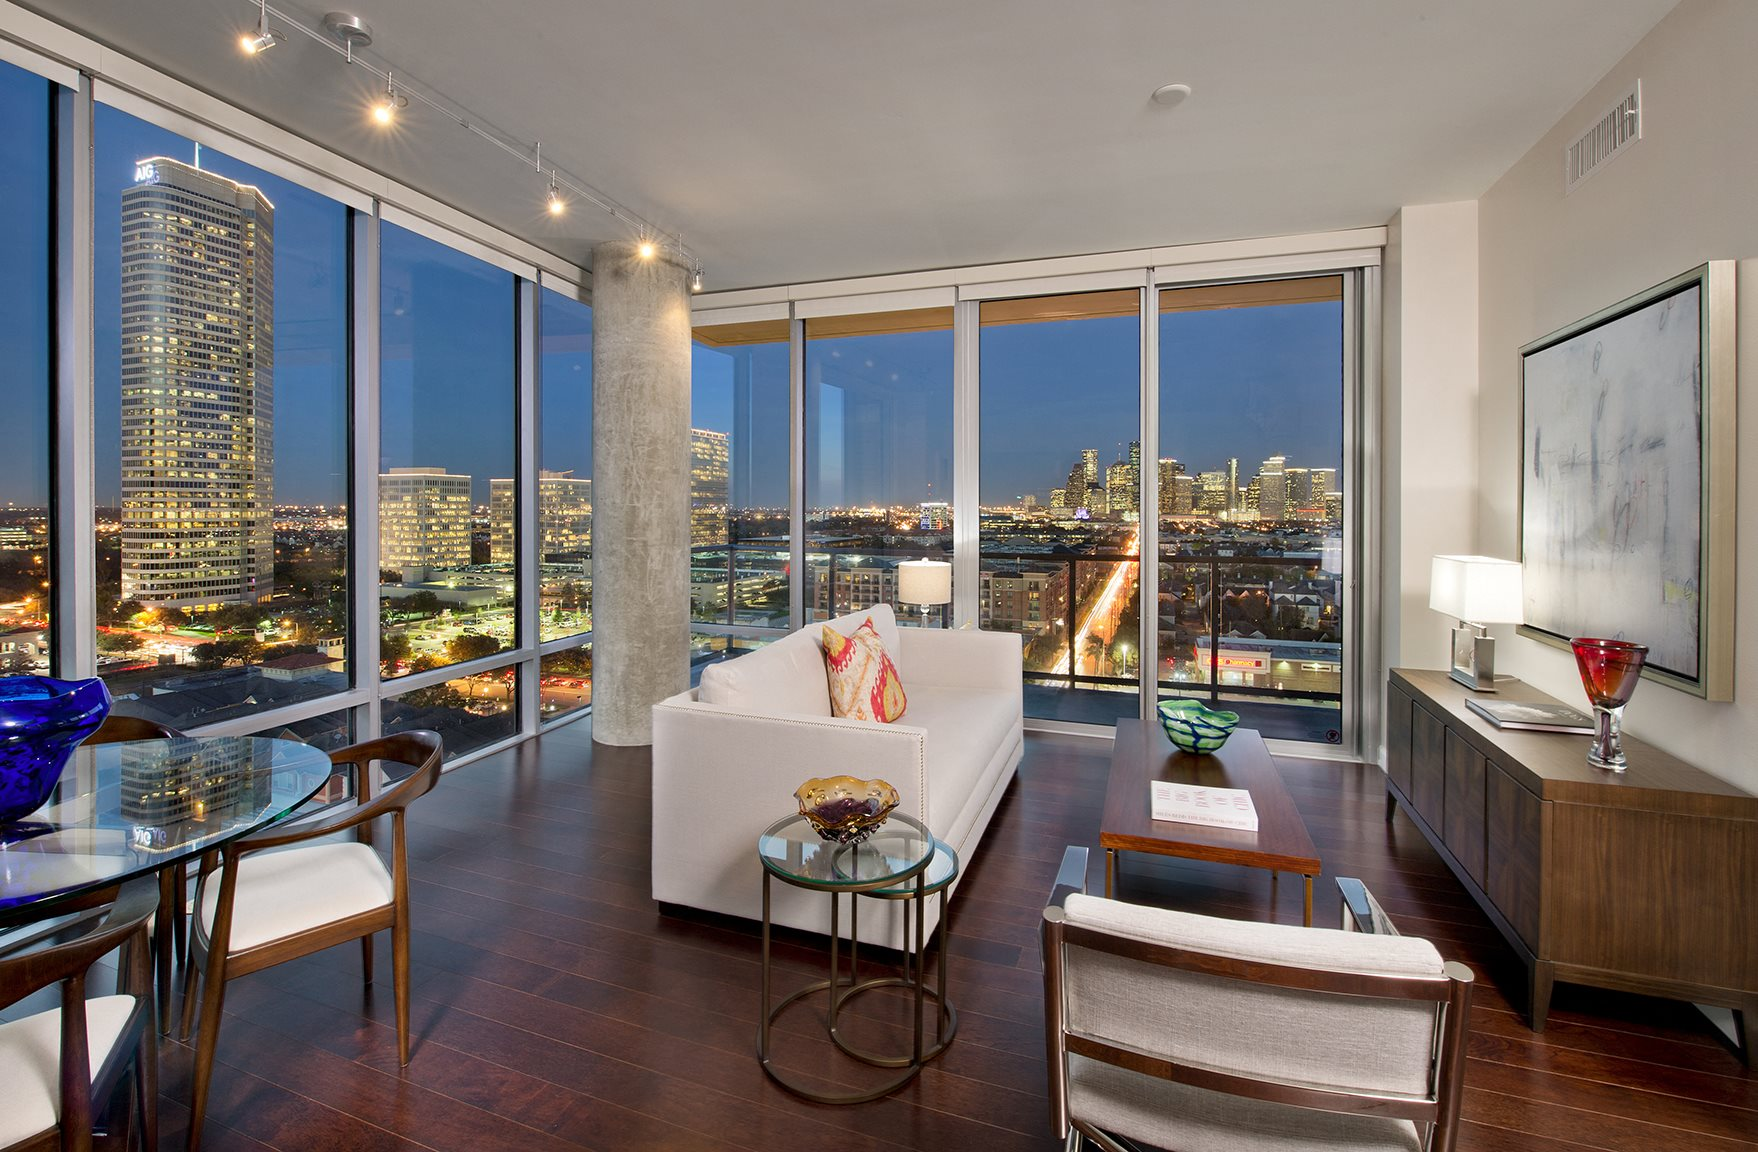 Luxurious Interiors With Modern Lighting At The Sovereign Regent Square 3233 West Dallas